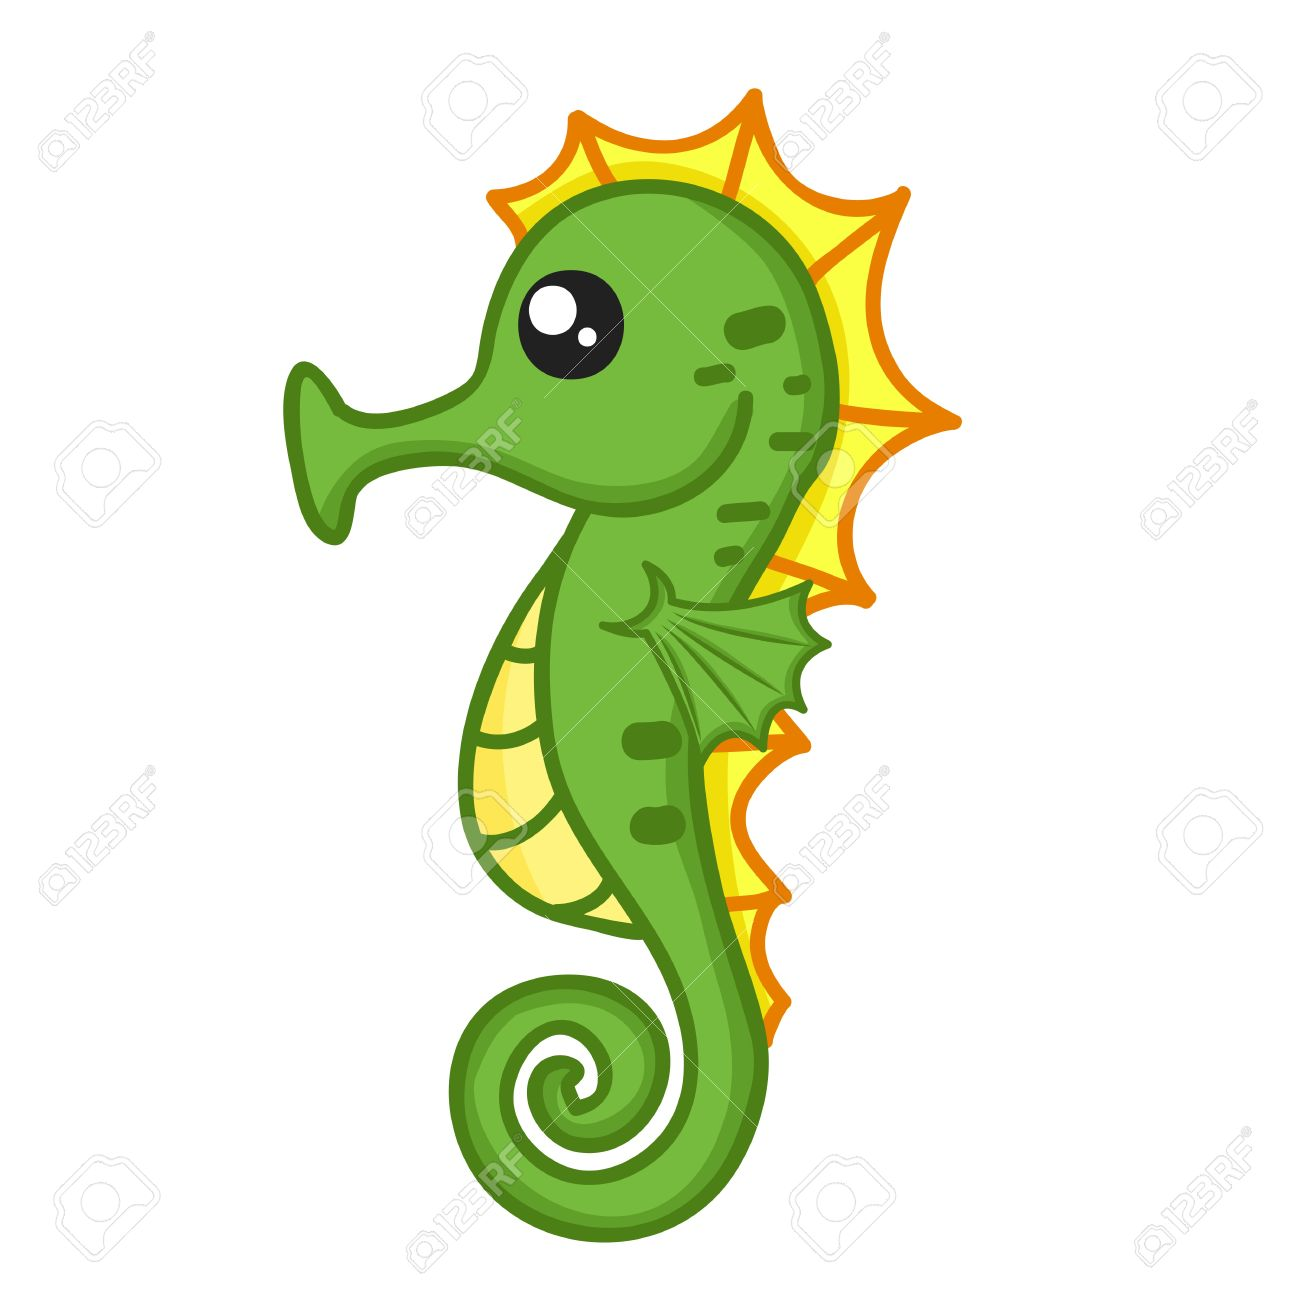 Seahorse clipart #7, Download drawings